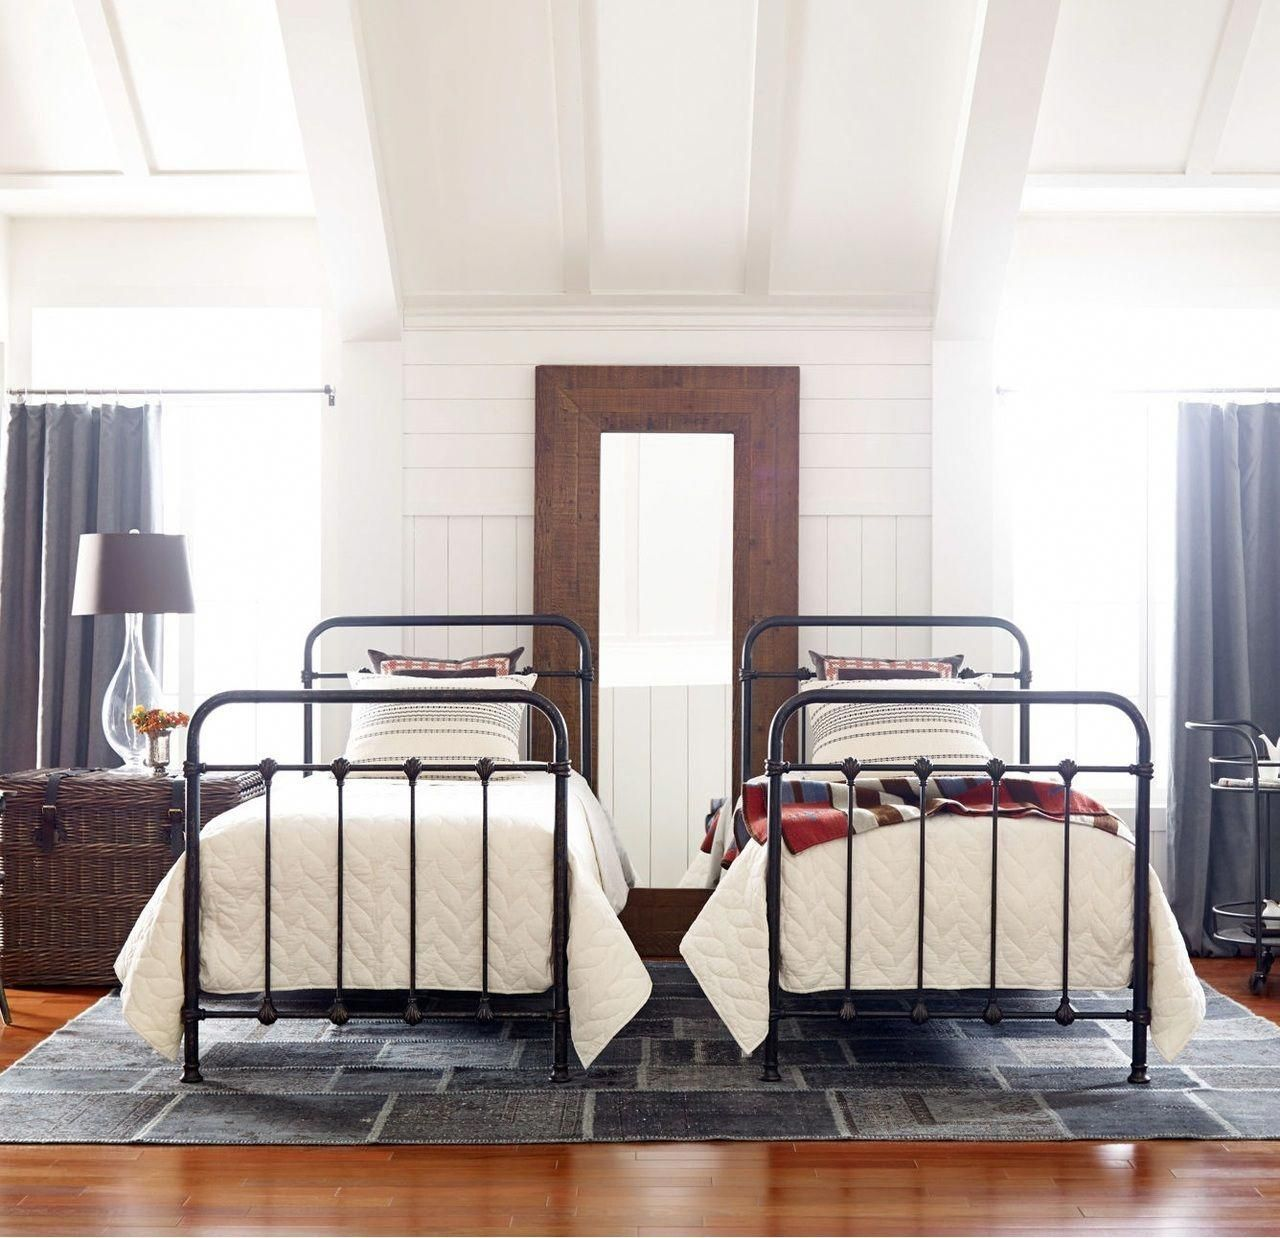 Bed Frames Low To The Ground Bed Frame Brackets For Headboard Furnituremalang Furnituresurabaya Bed Iron Twin Bed Twin Platform Bed Frame Platform Bed Frame Low to the ground twin bed